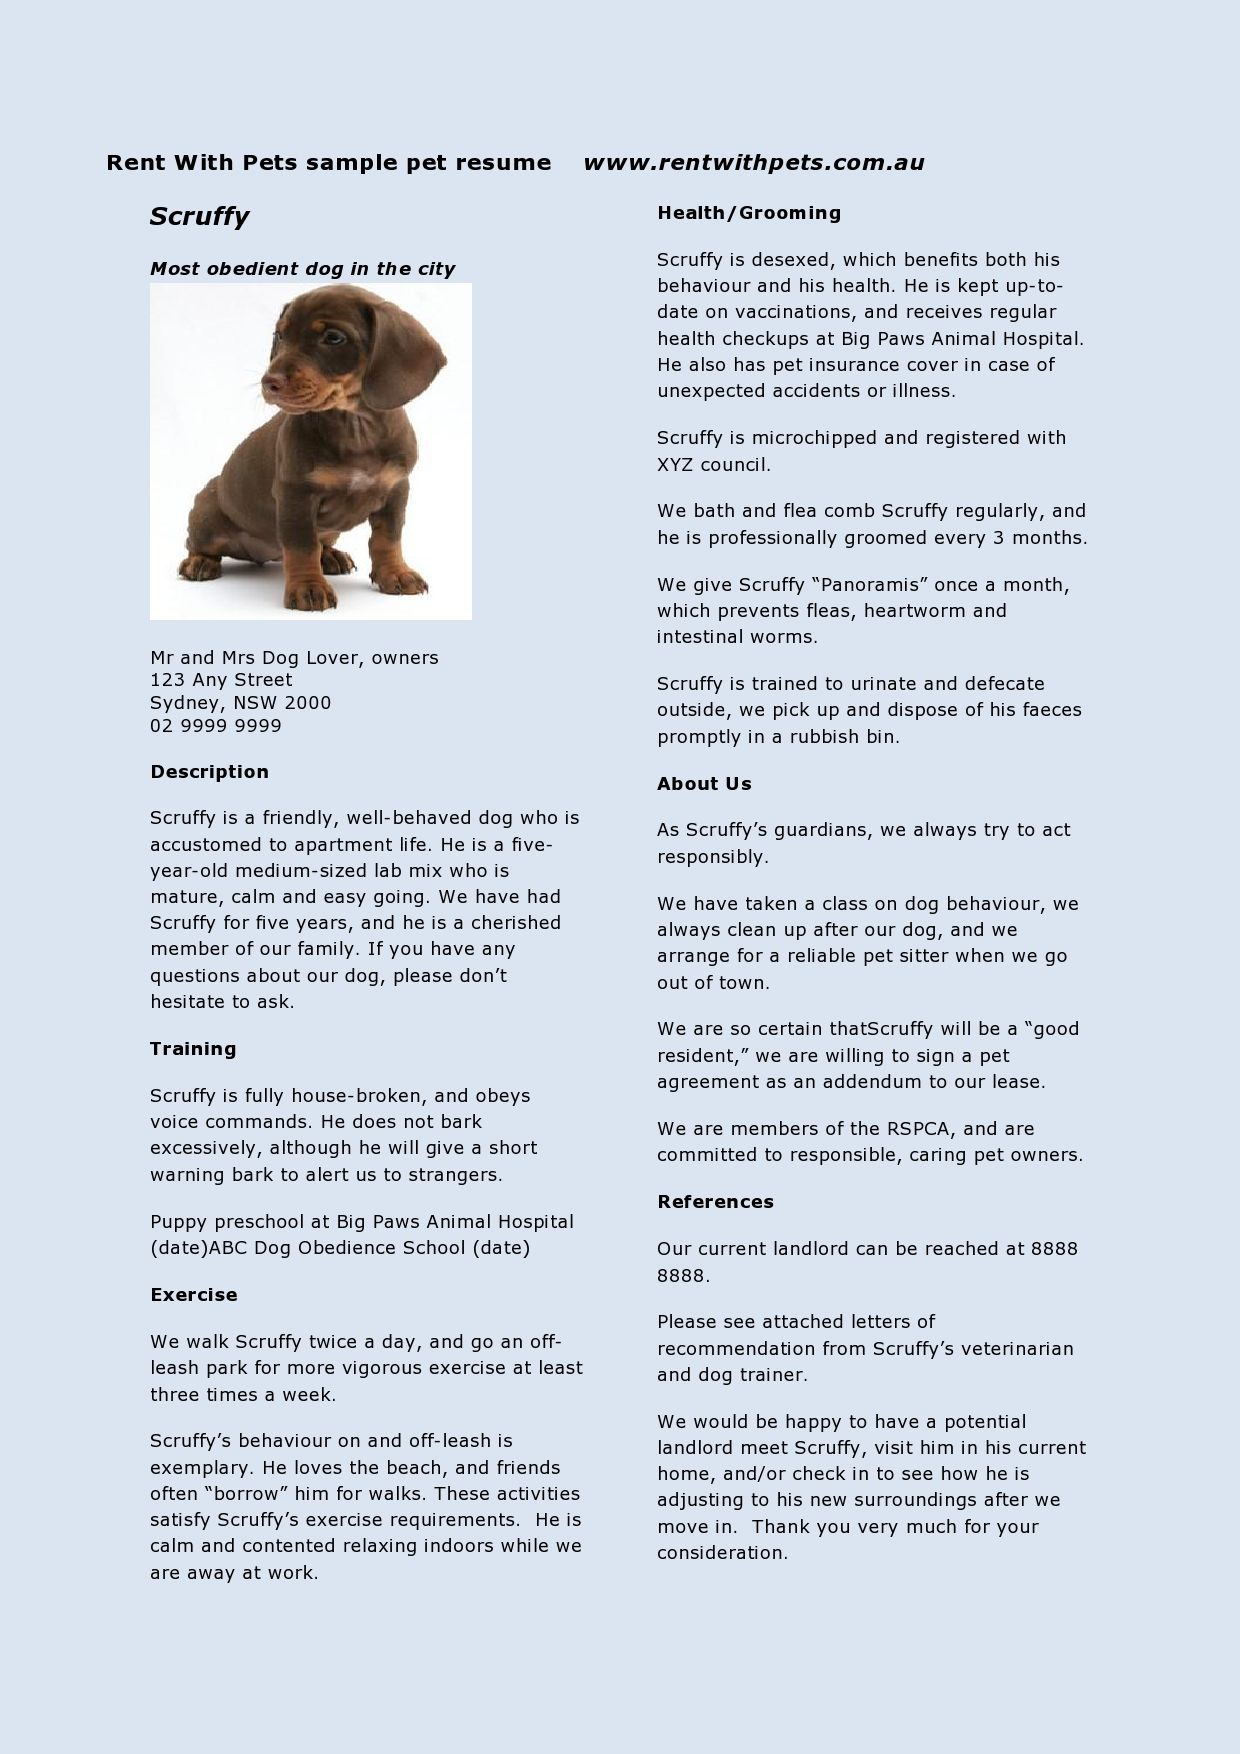 Pet Resumes How They Can Help Your Veterinary Clients Rent With Pets Blog Post Dog Care Pets Pet Blog